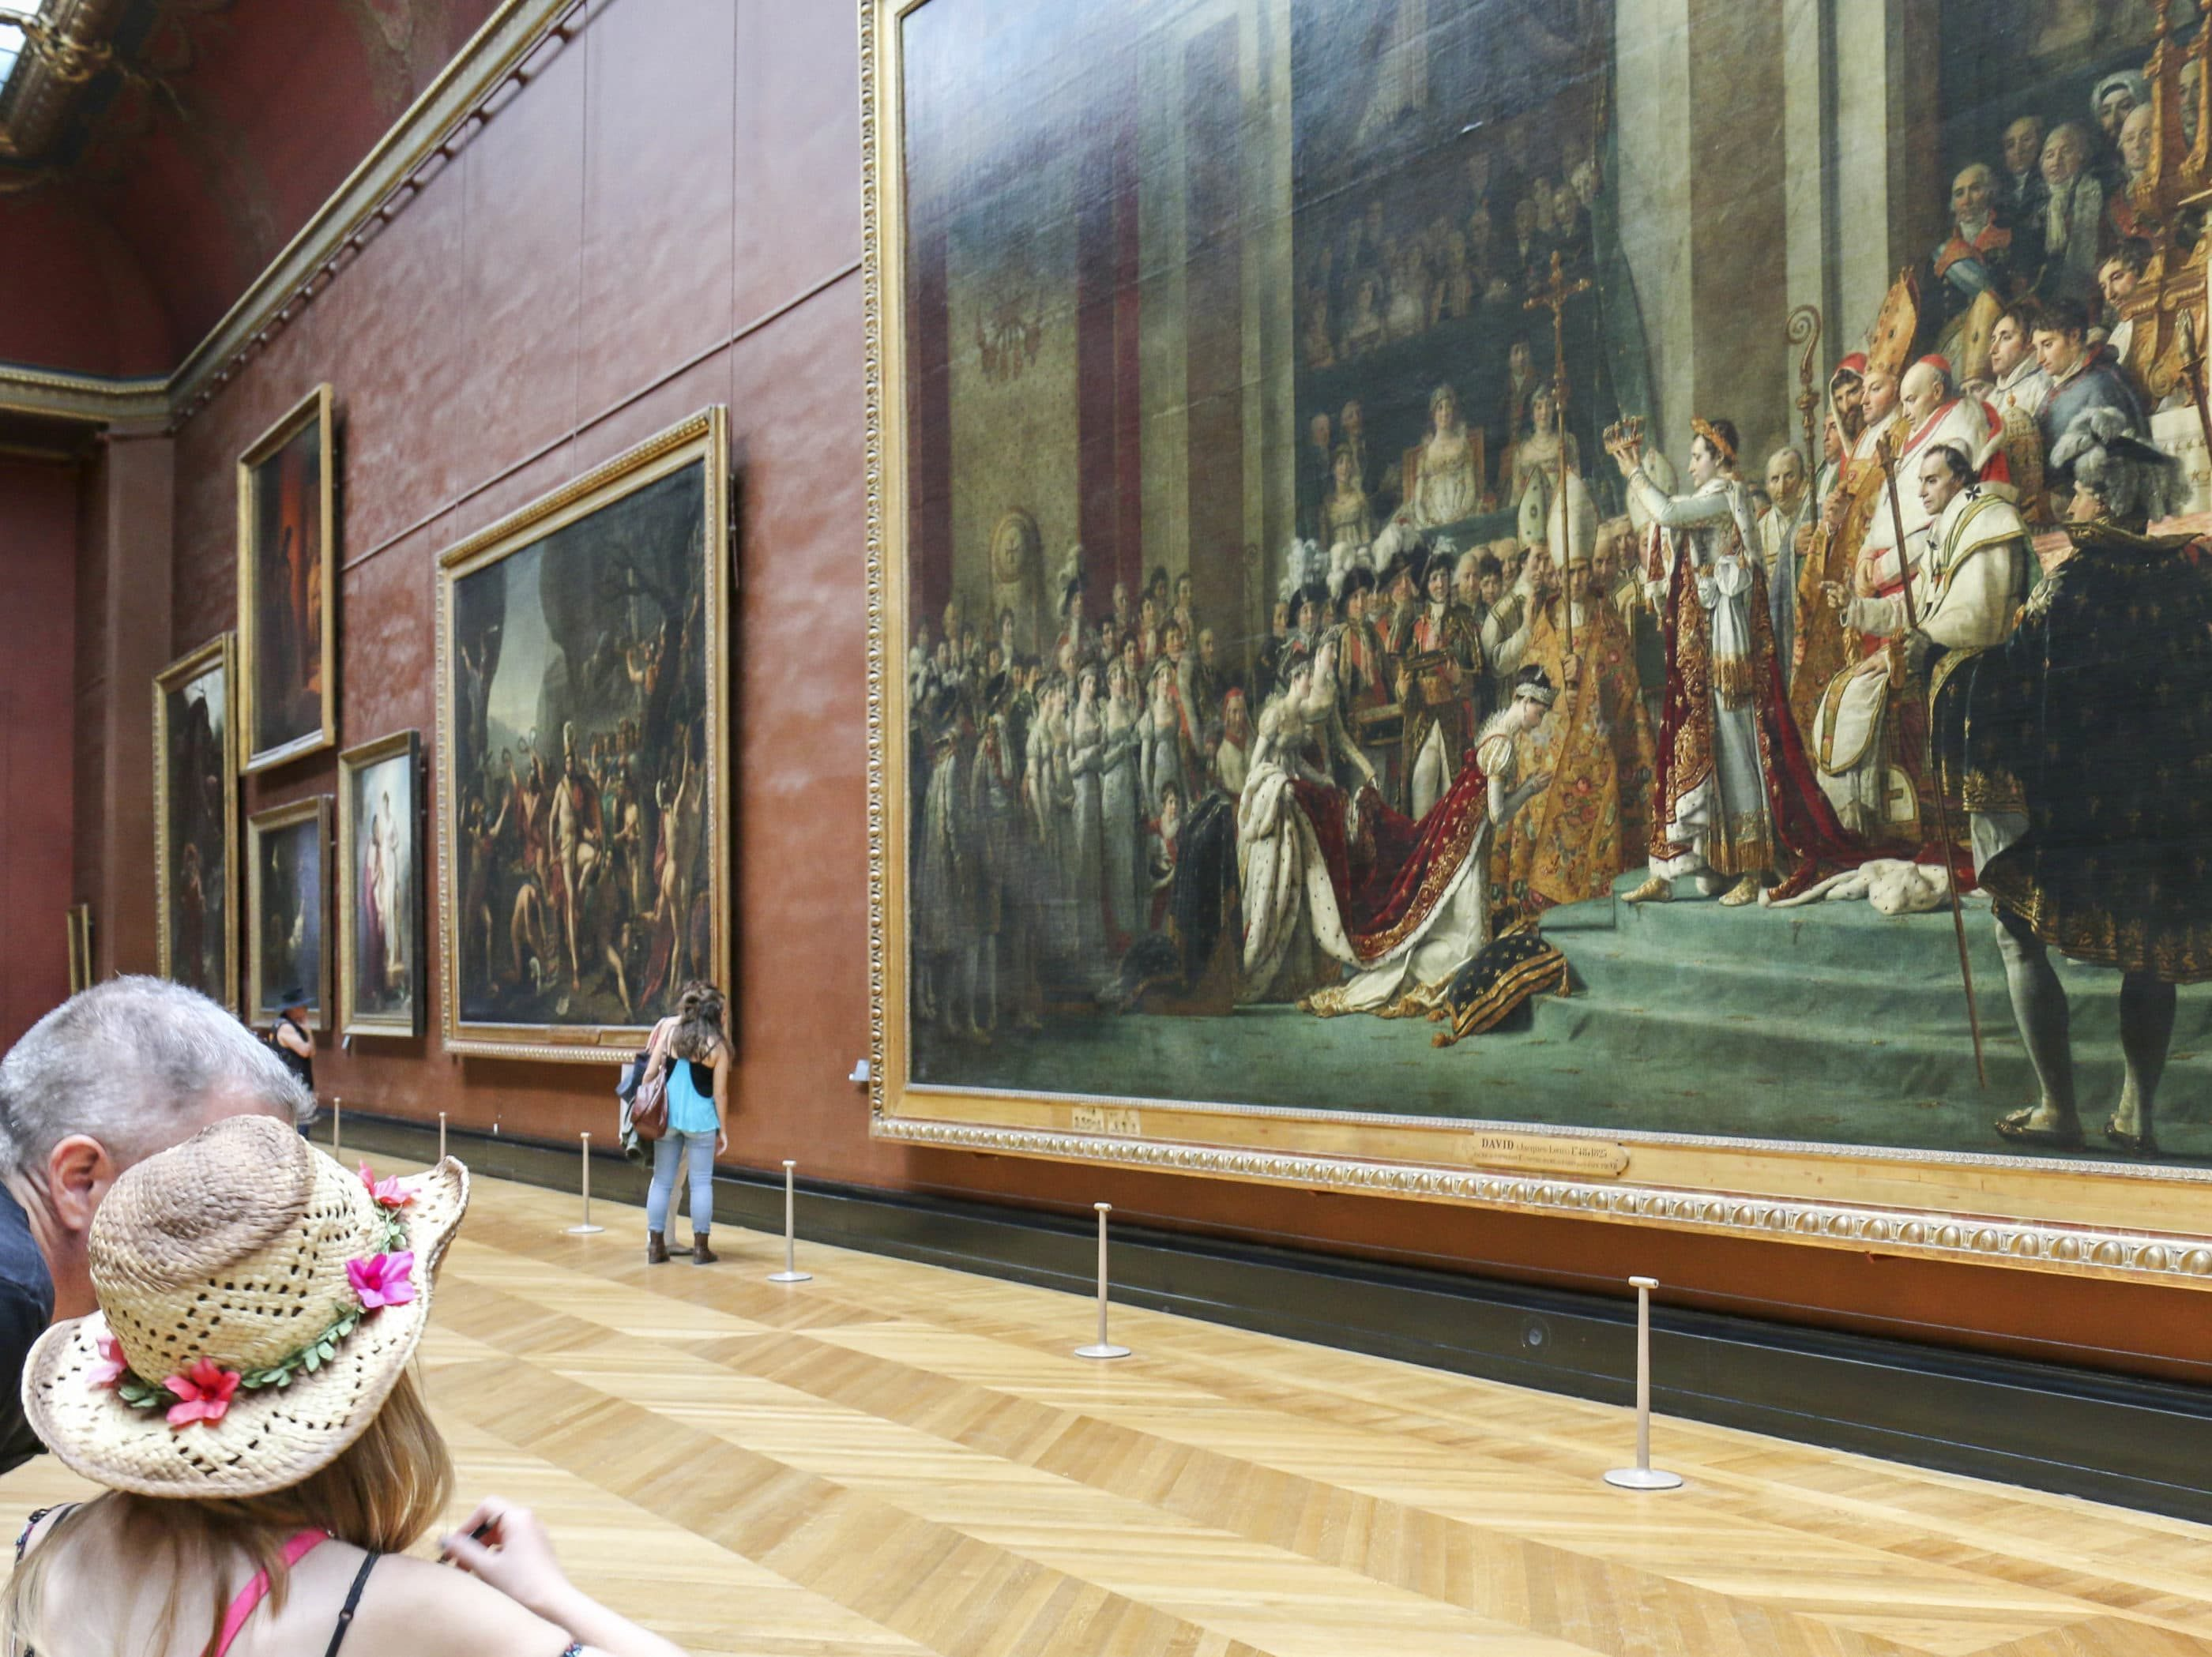 My husband explaining to my daughter the significance of The Coronation of Napoleon by Jacques-Louis David in front of the massive painting.